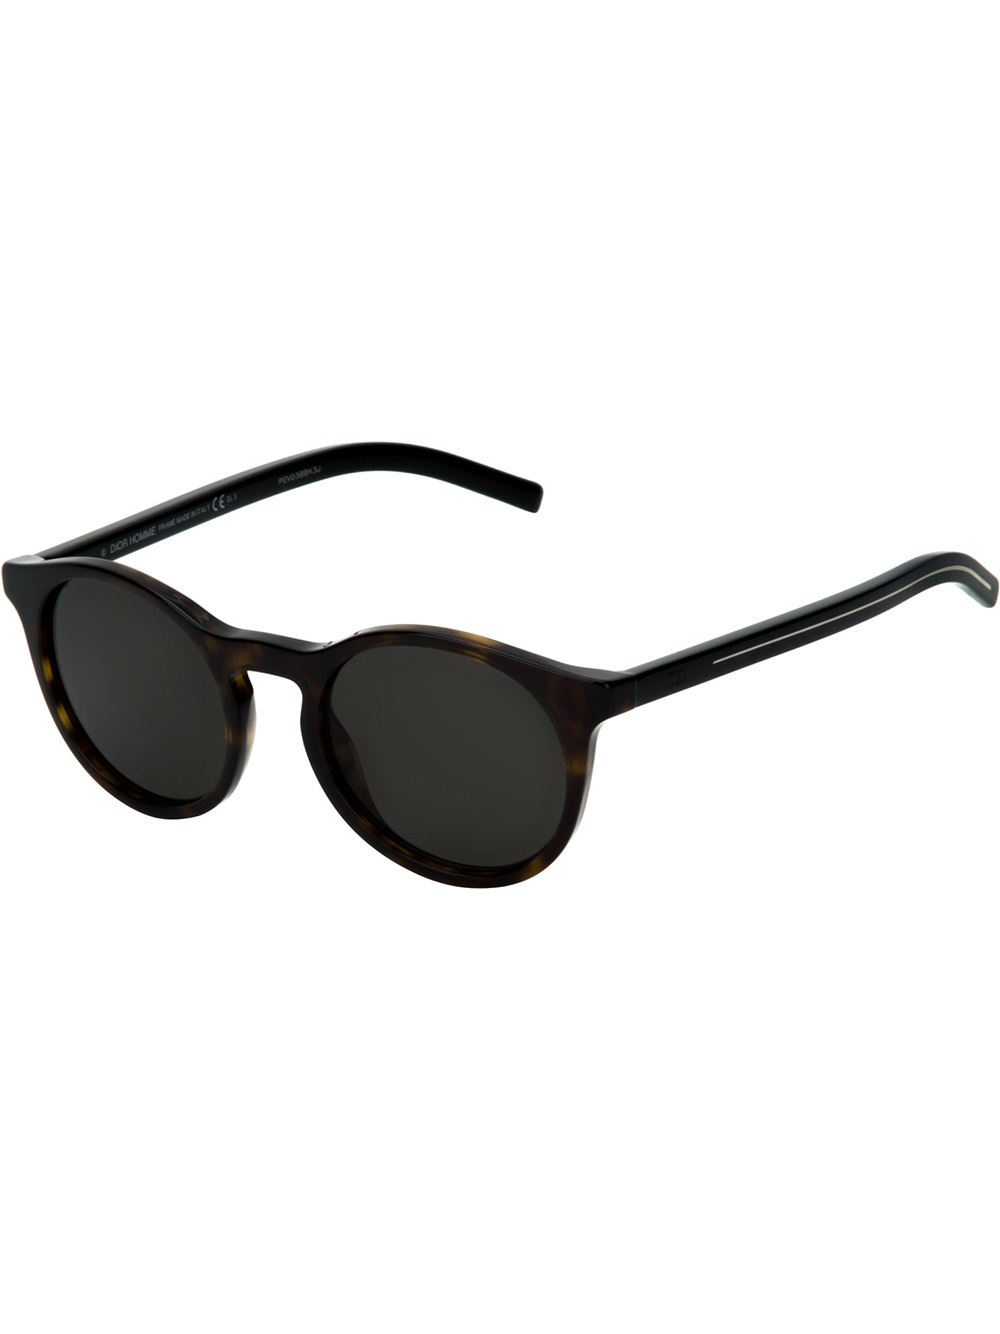 Lyst - Dior Homme Round Frame Sunglasses in Black for Men